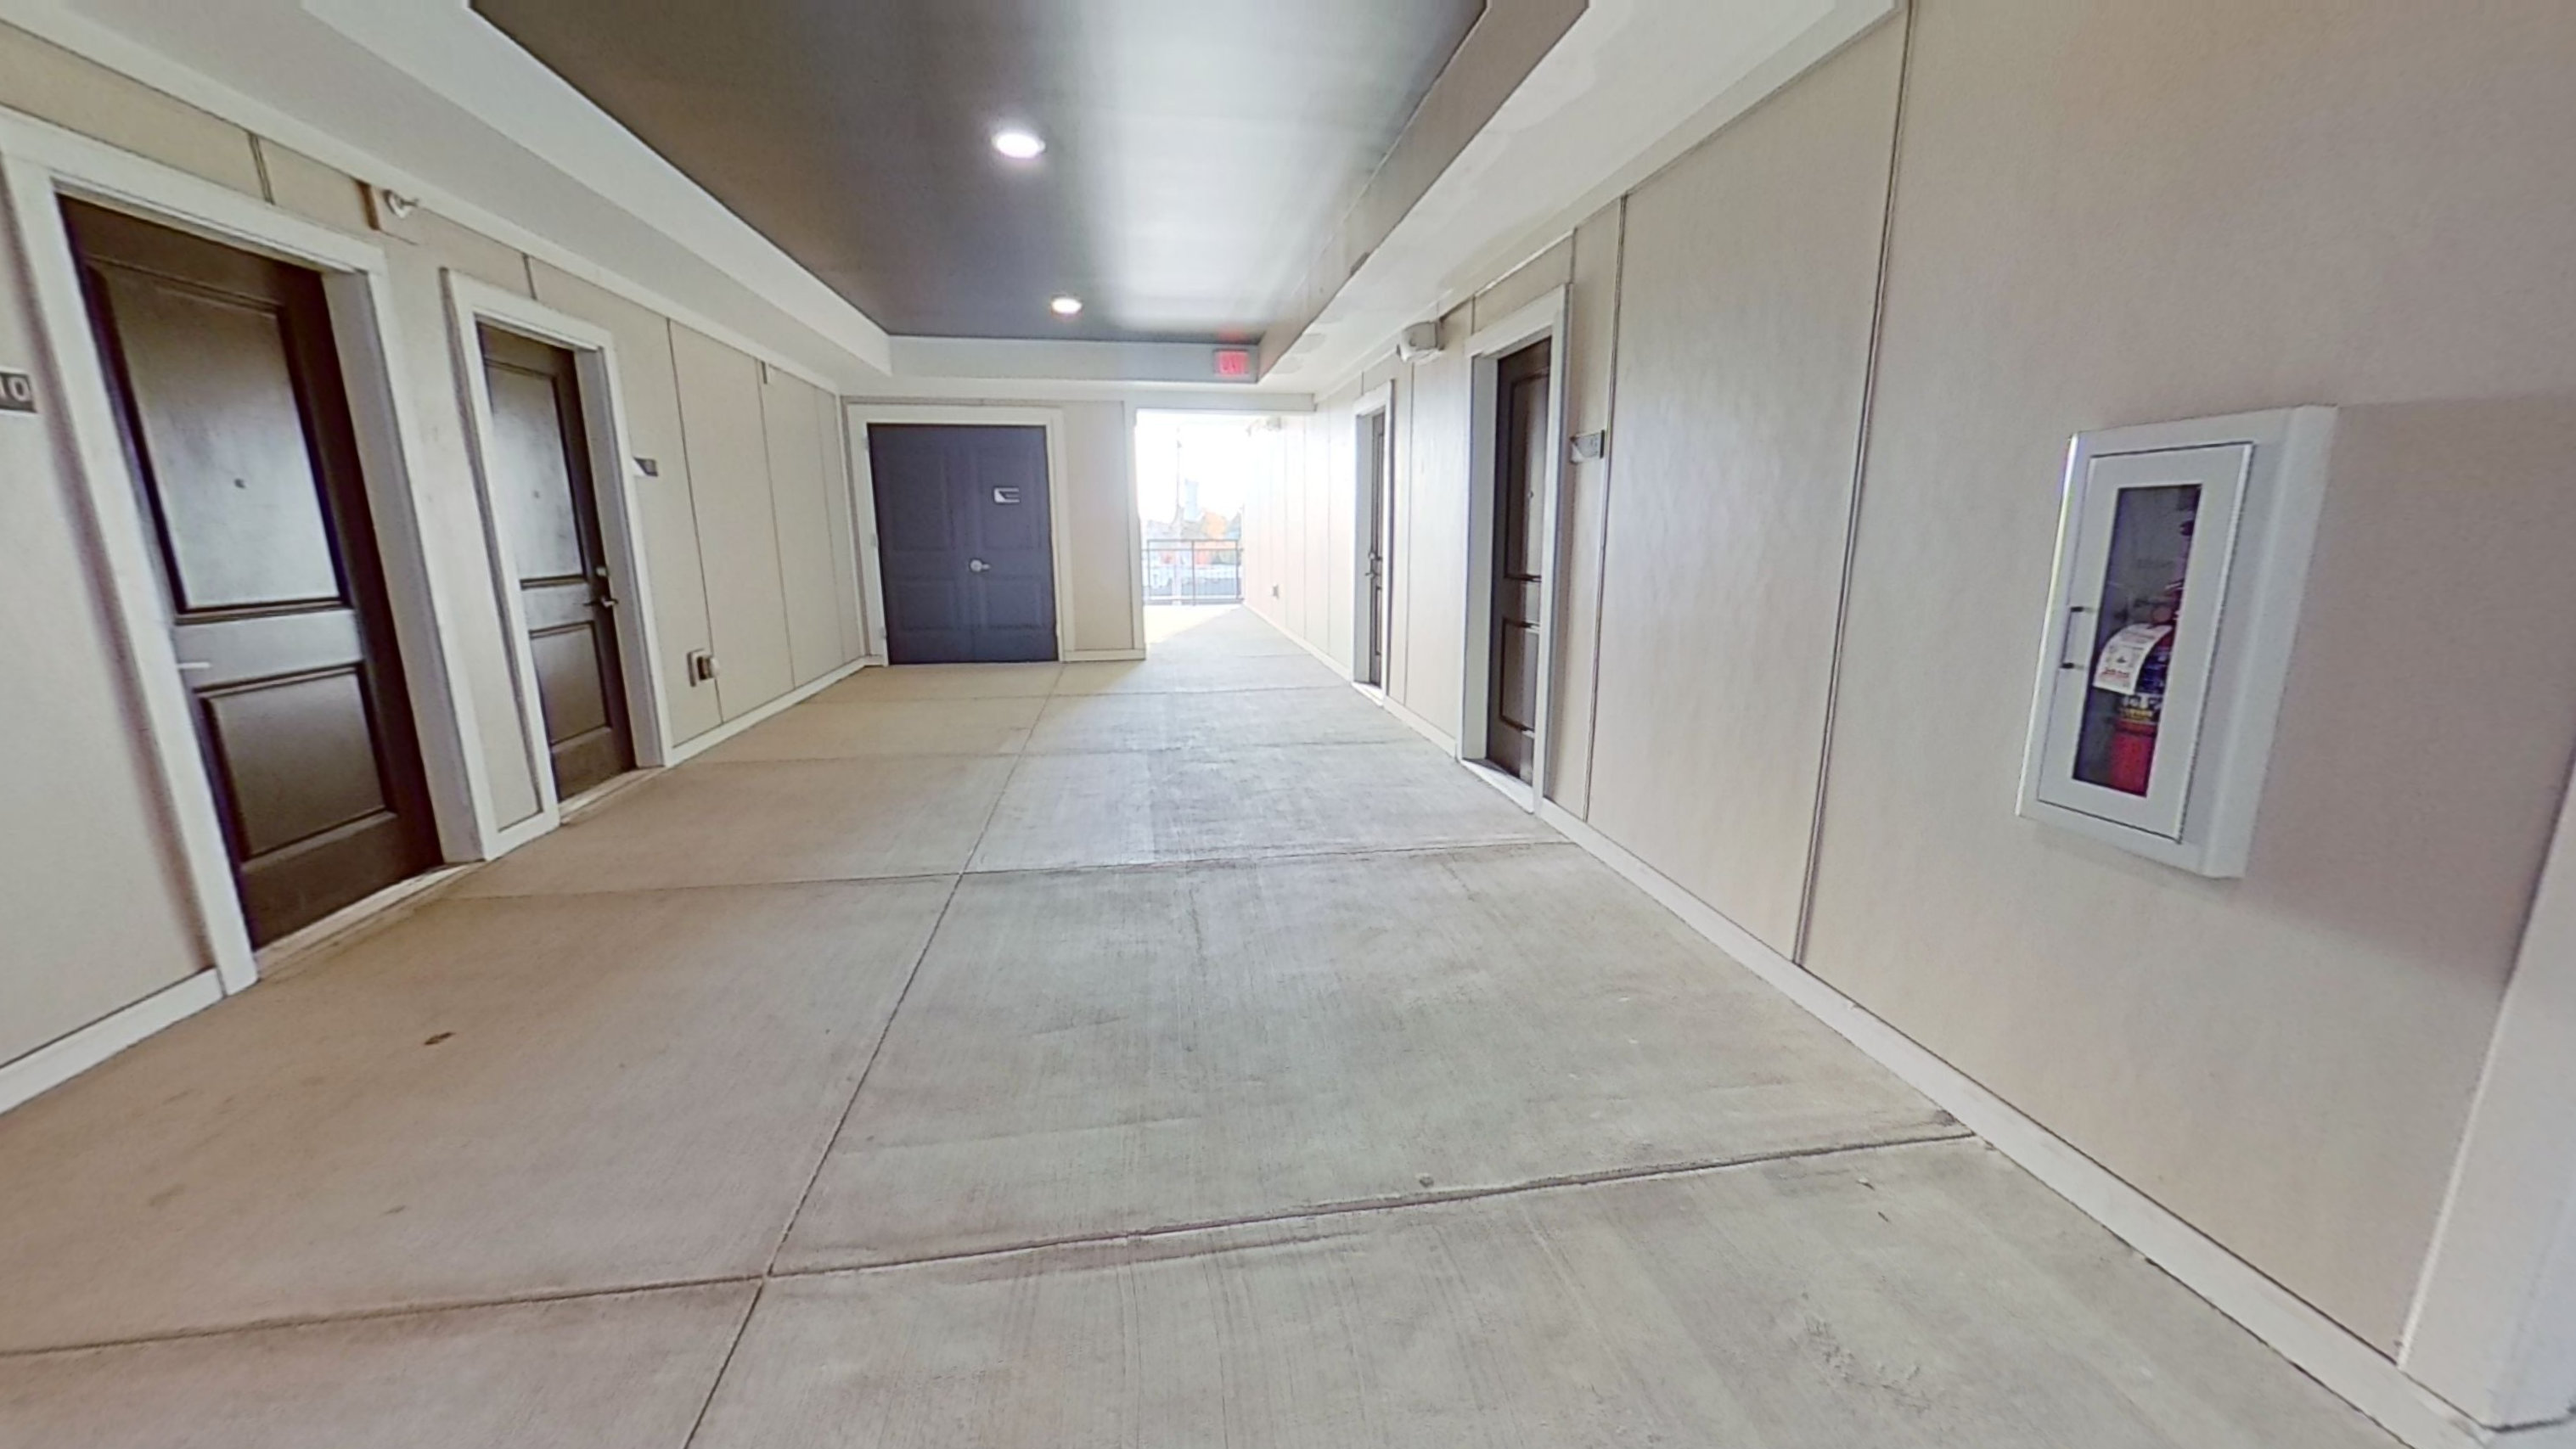 B1 Hallway at the Vue at Creve Coeur Apartments in Creve Coeur, MO